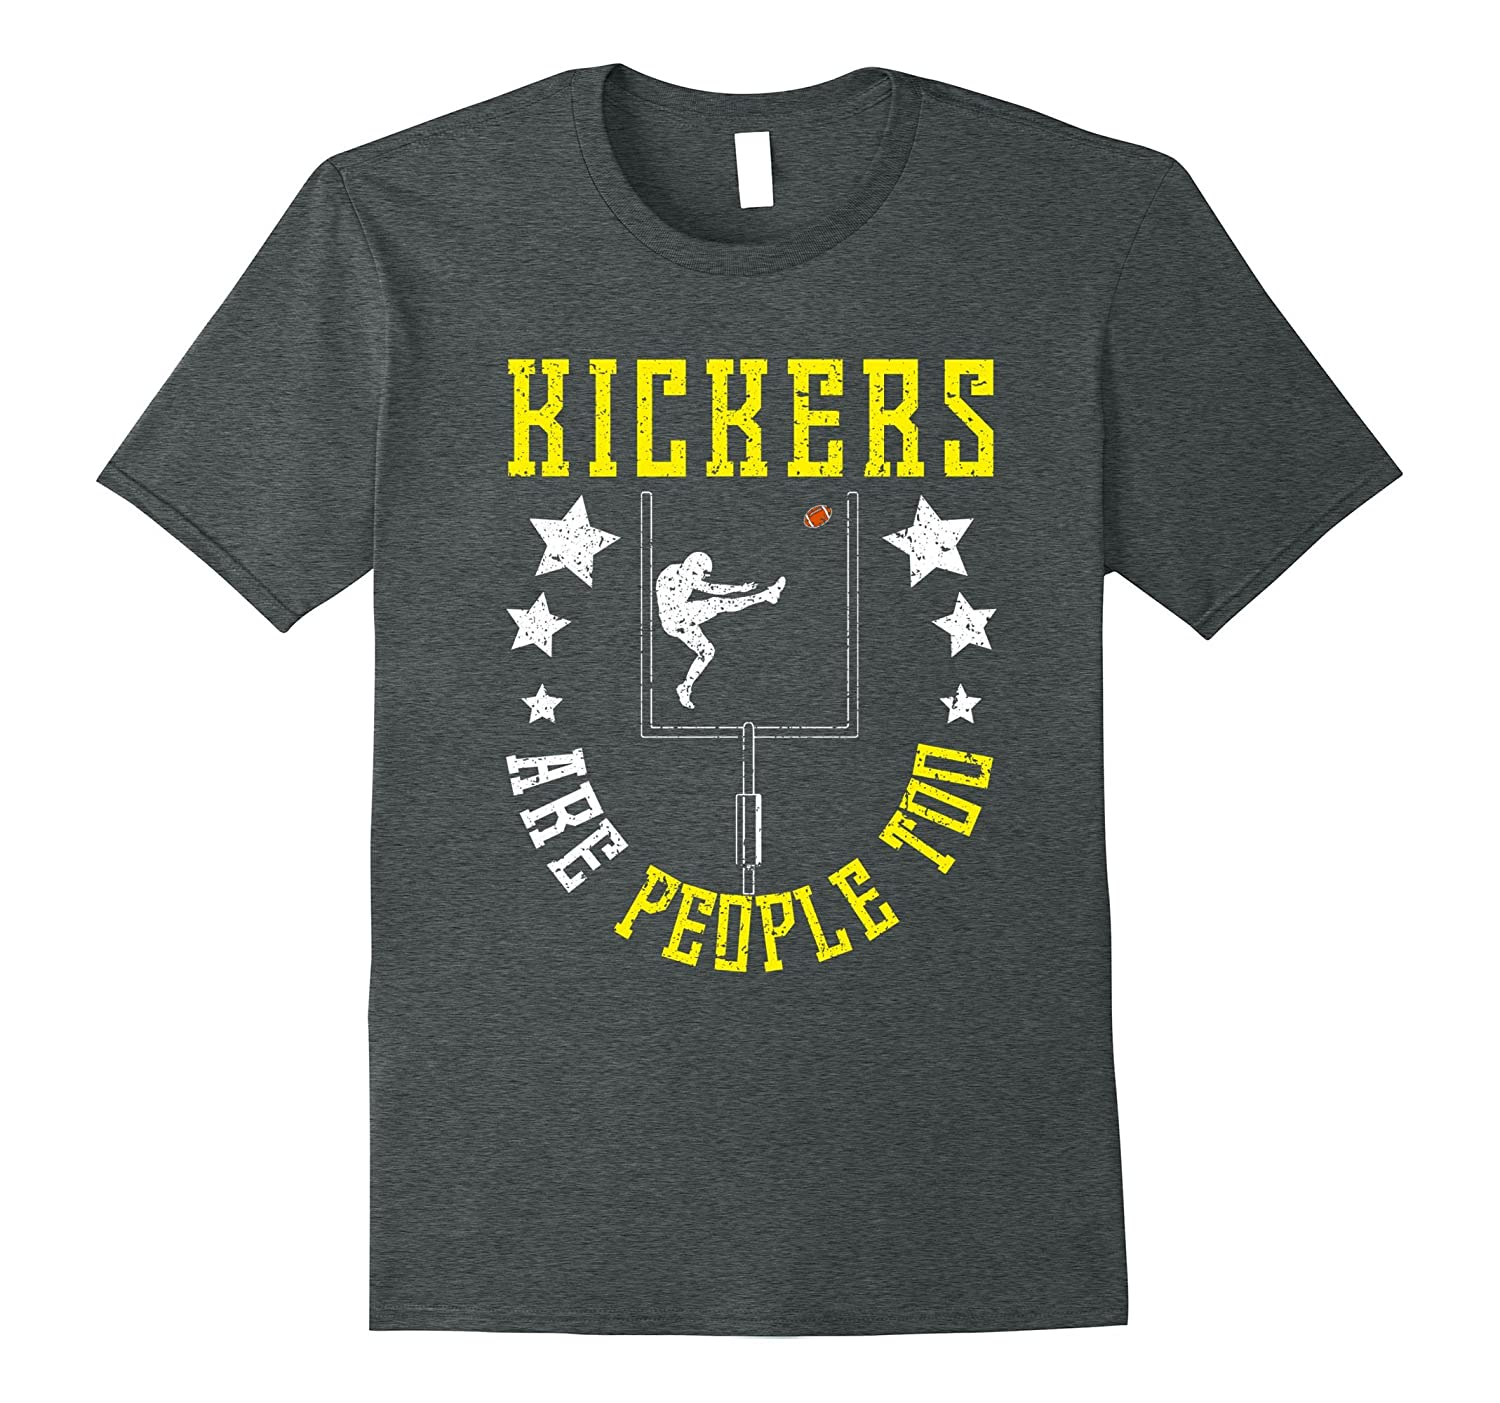 Funny Kickers Are People Too T-shirt Football School Gift-Protee